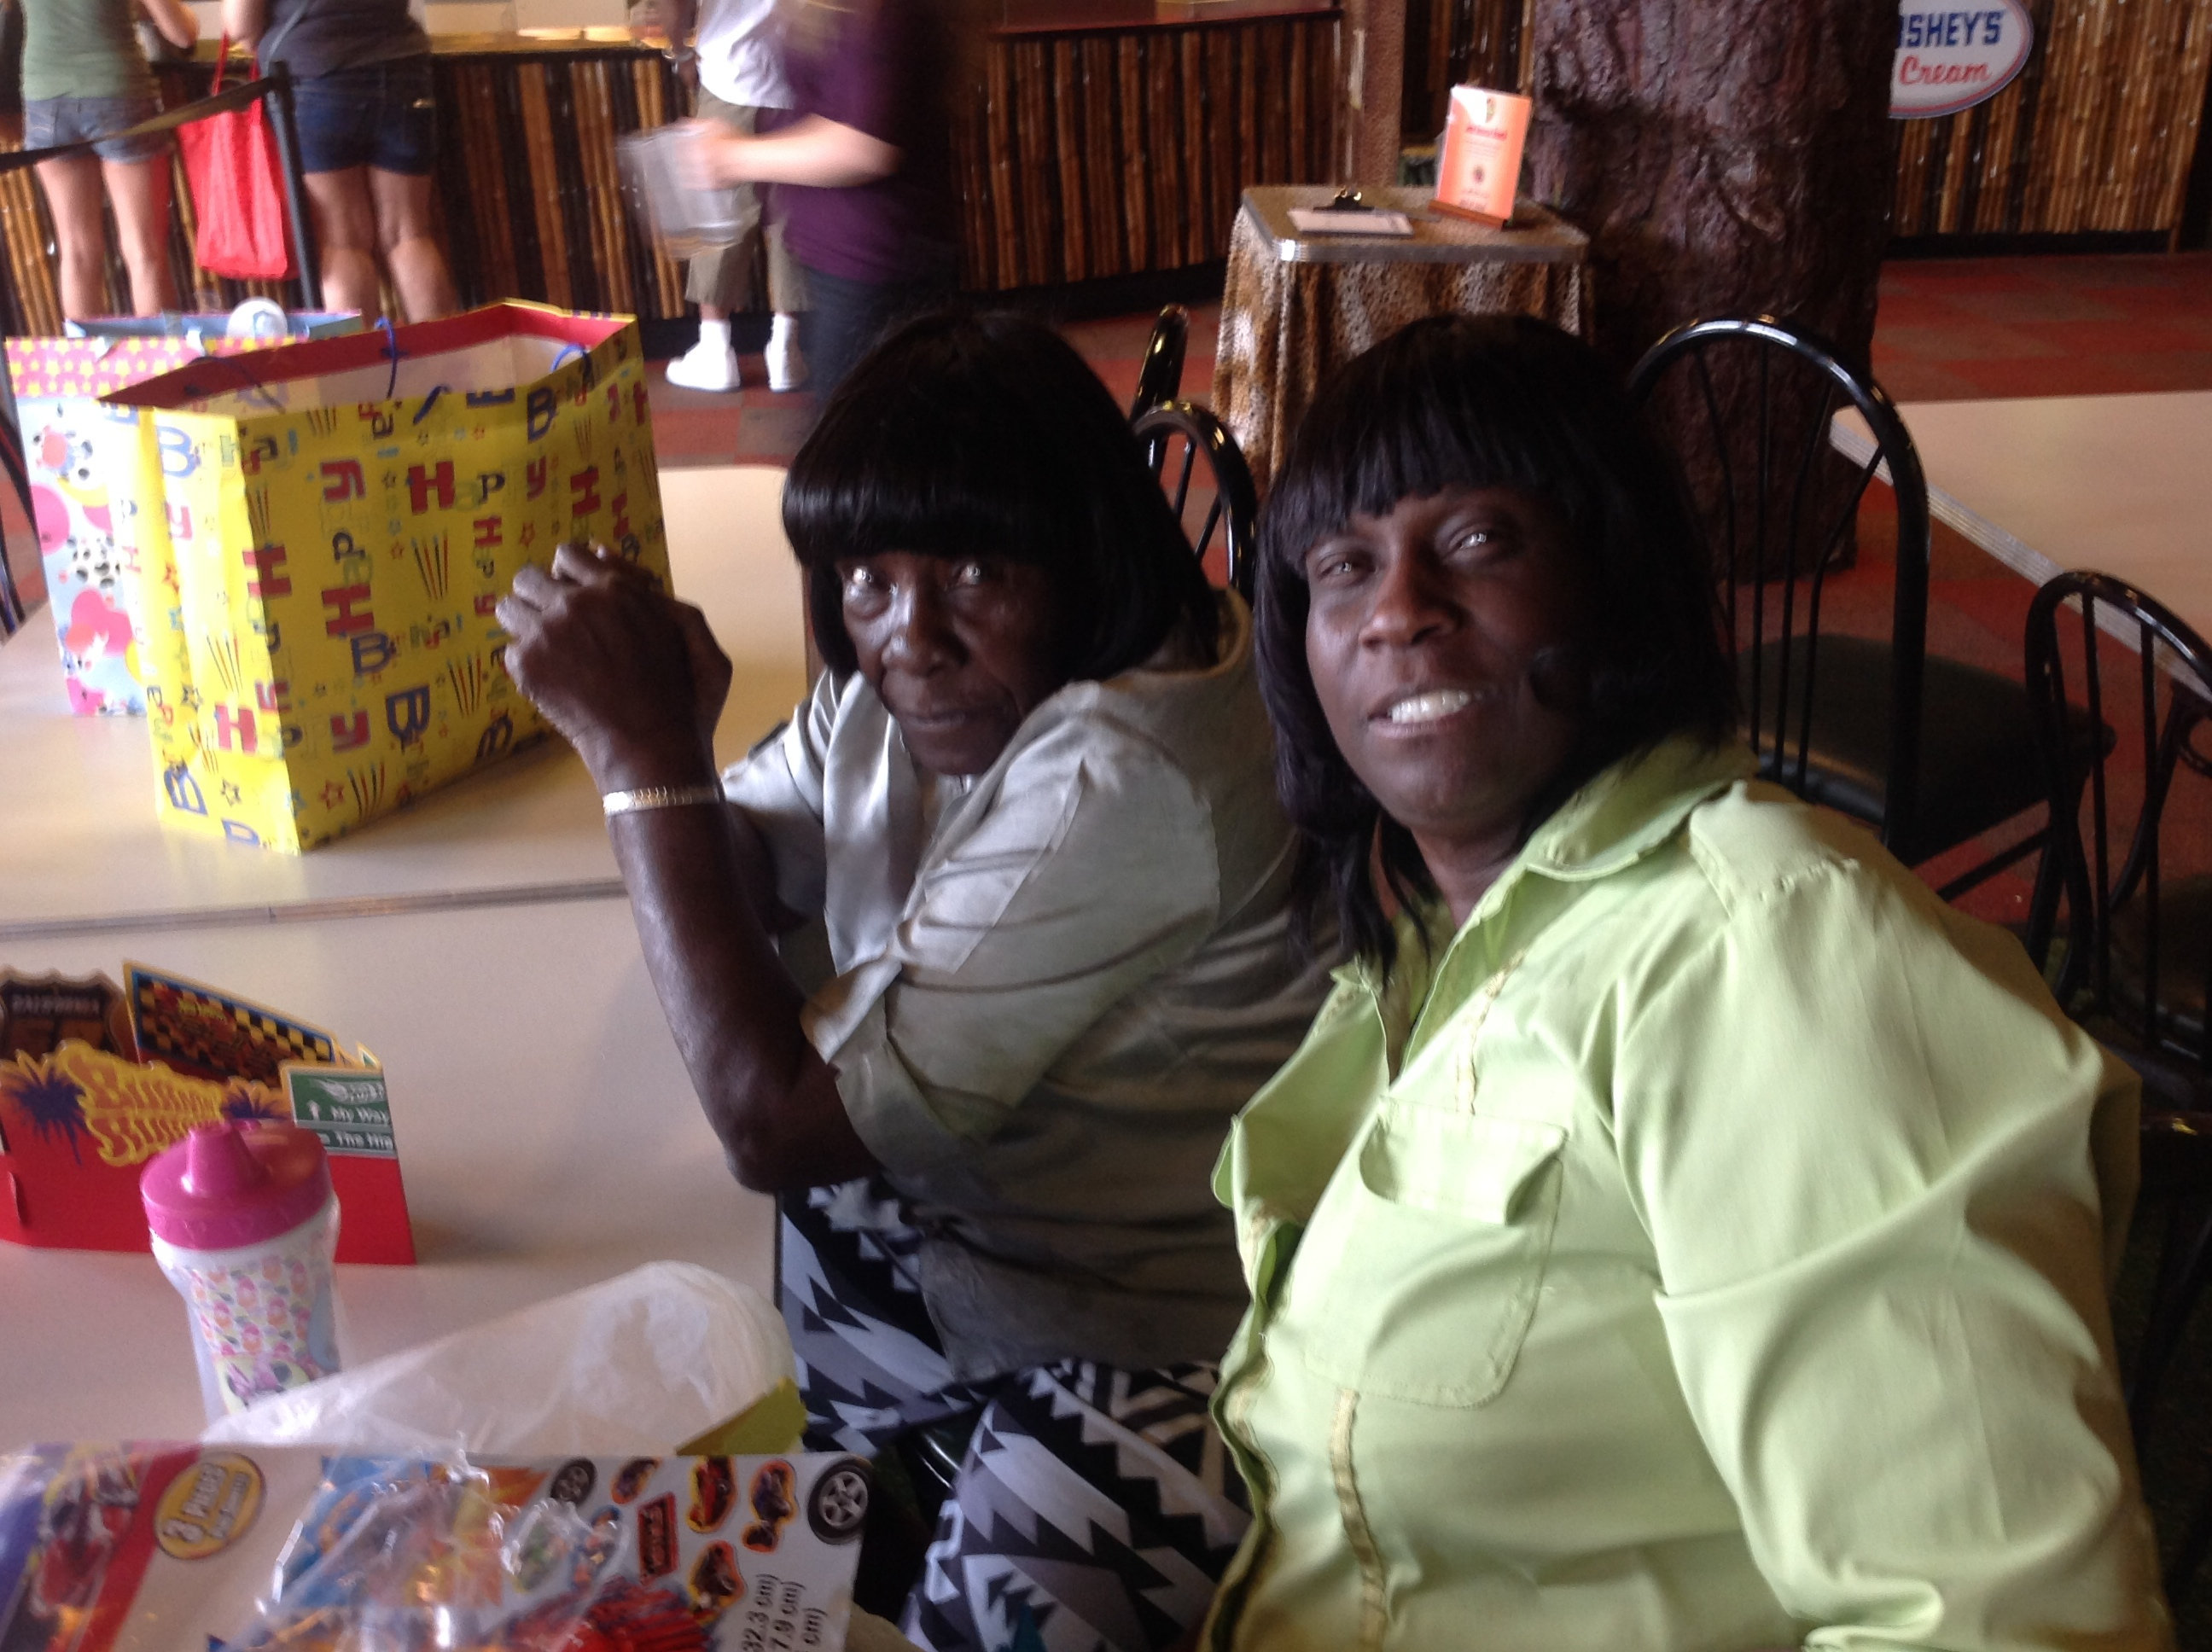 Sarah Crayton (right) and her mother at a family party on July 5, 2014, two days before a cardiology consultation that led to a heart test and complications.